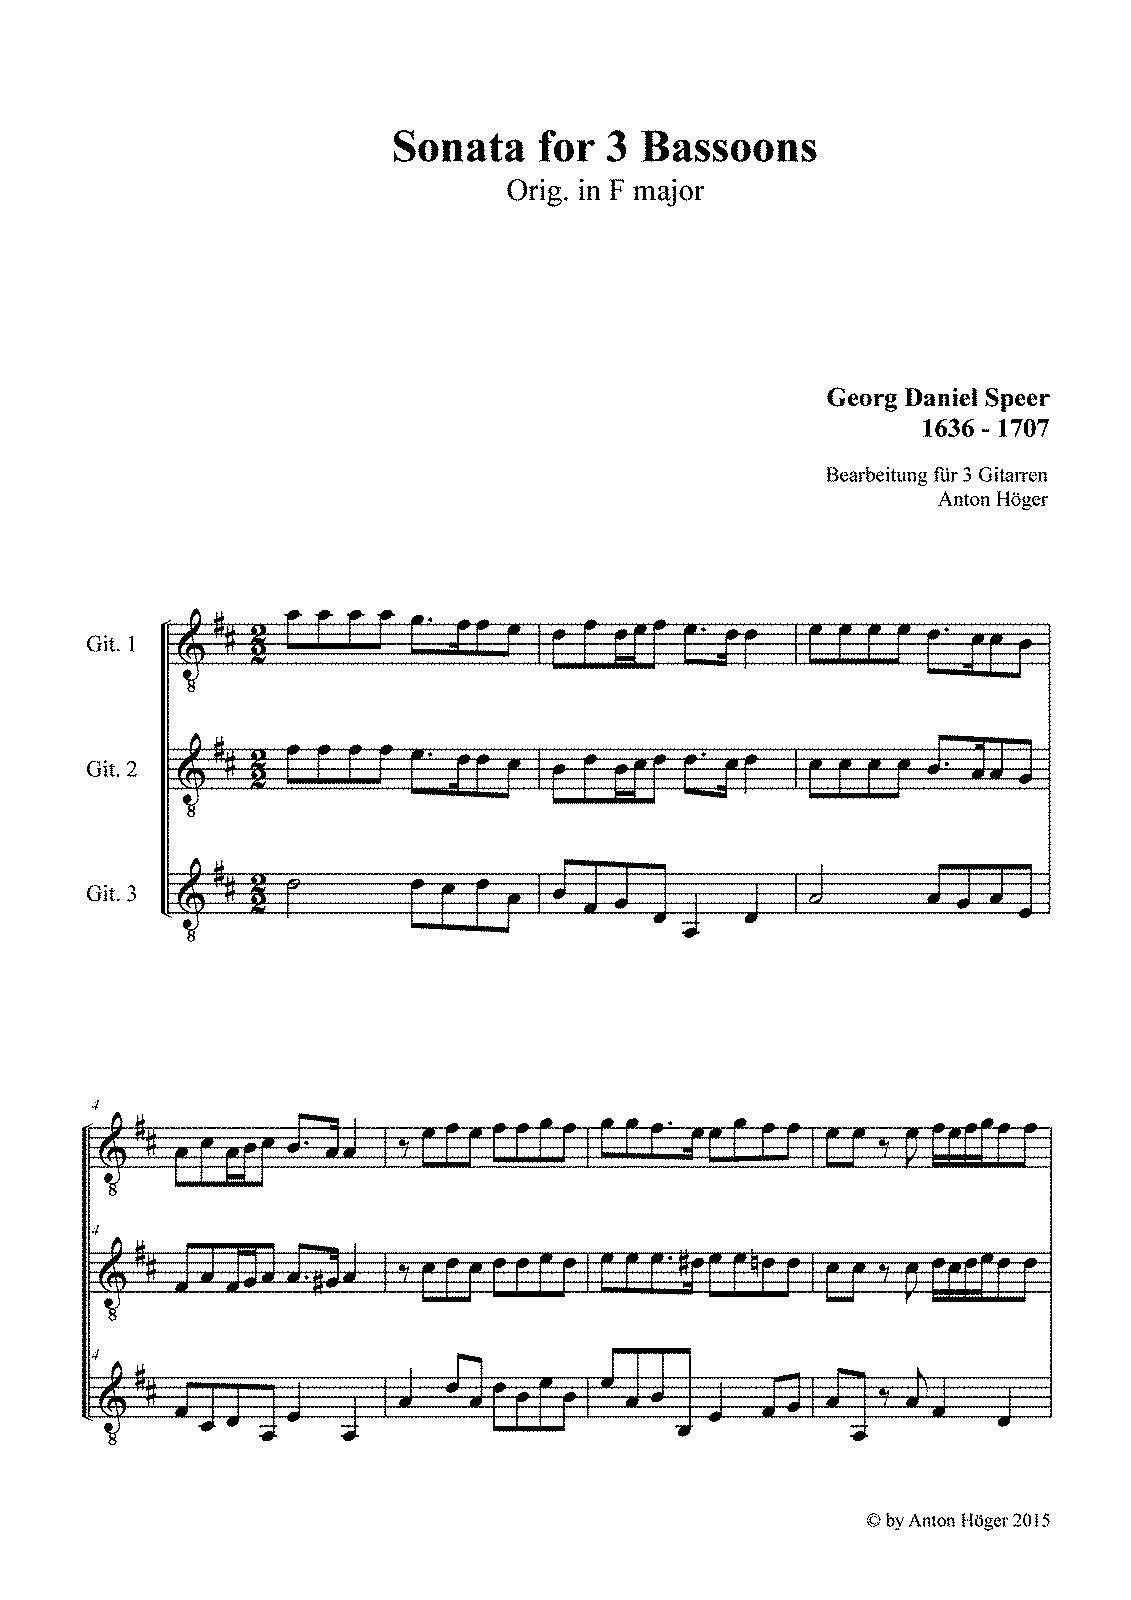 PMLP317936-Speer, Georg Daniel - Sonata for 3 Bassoons in F major.pdf